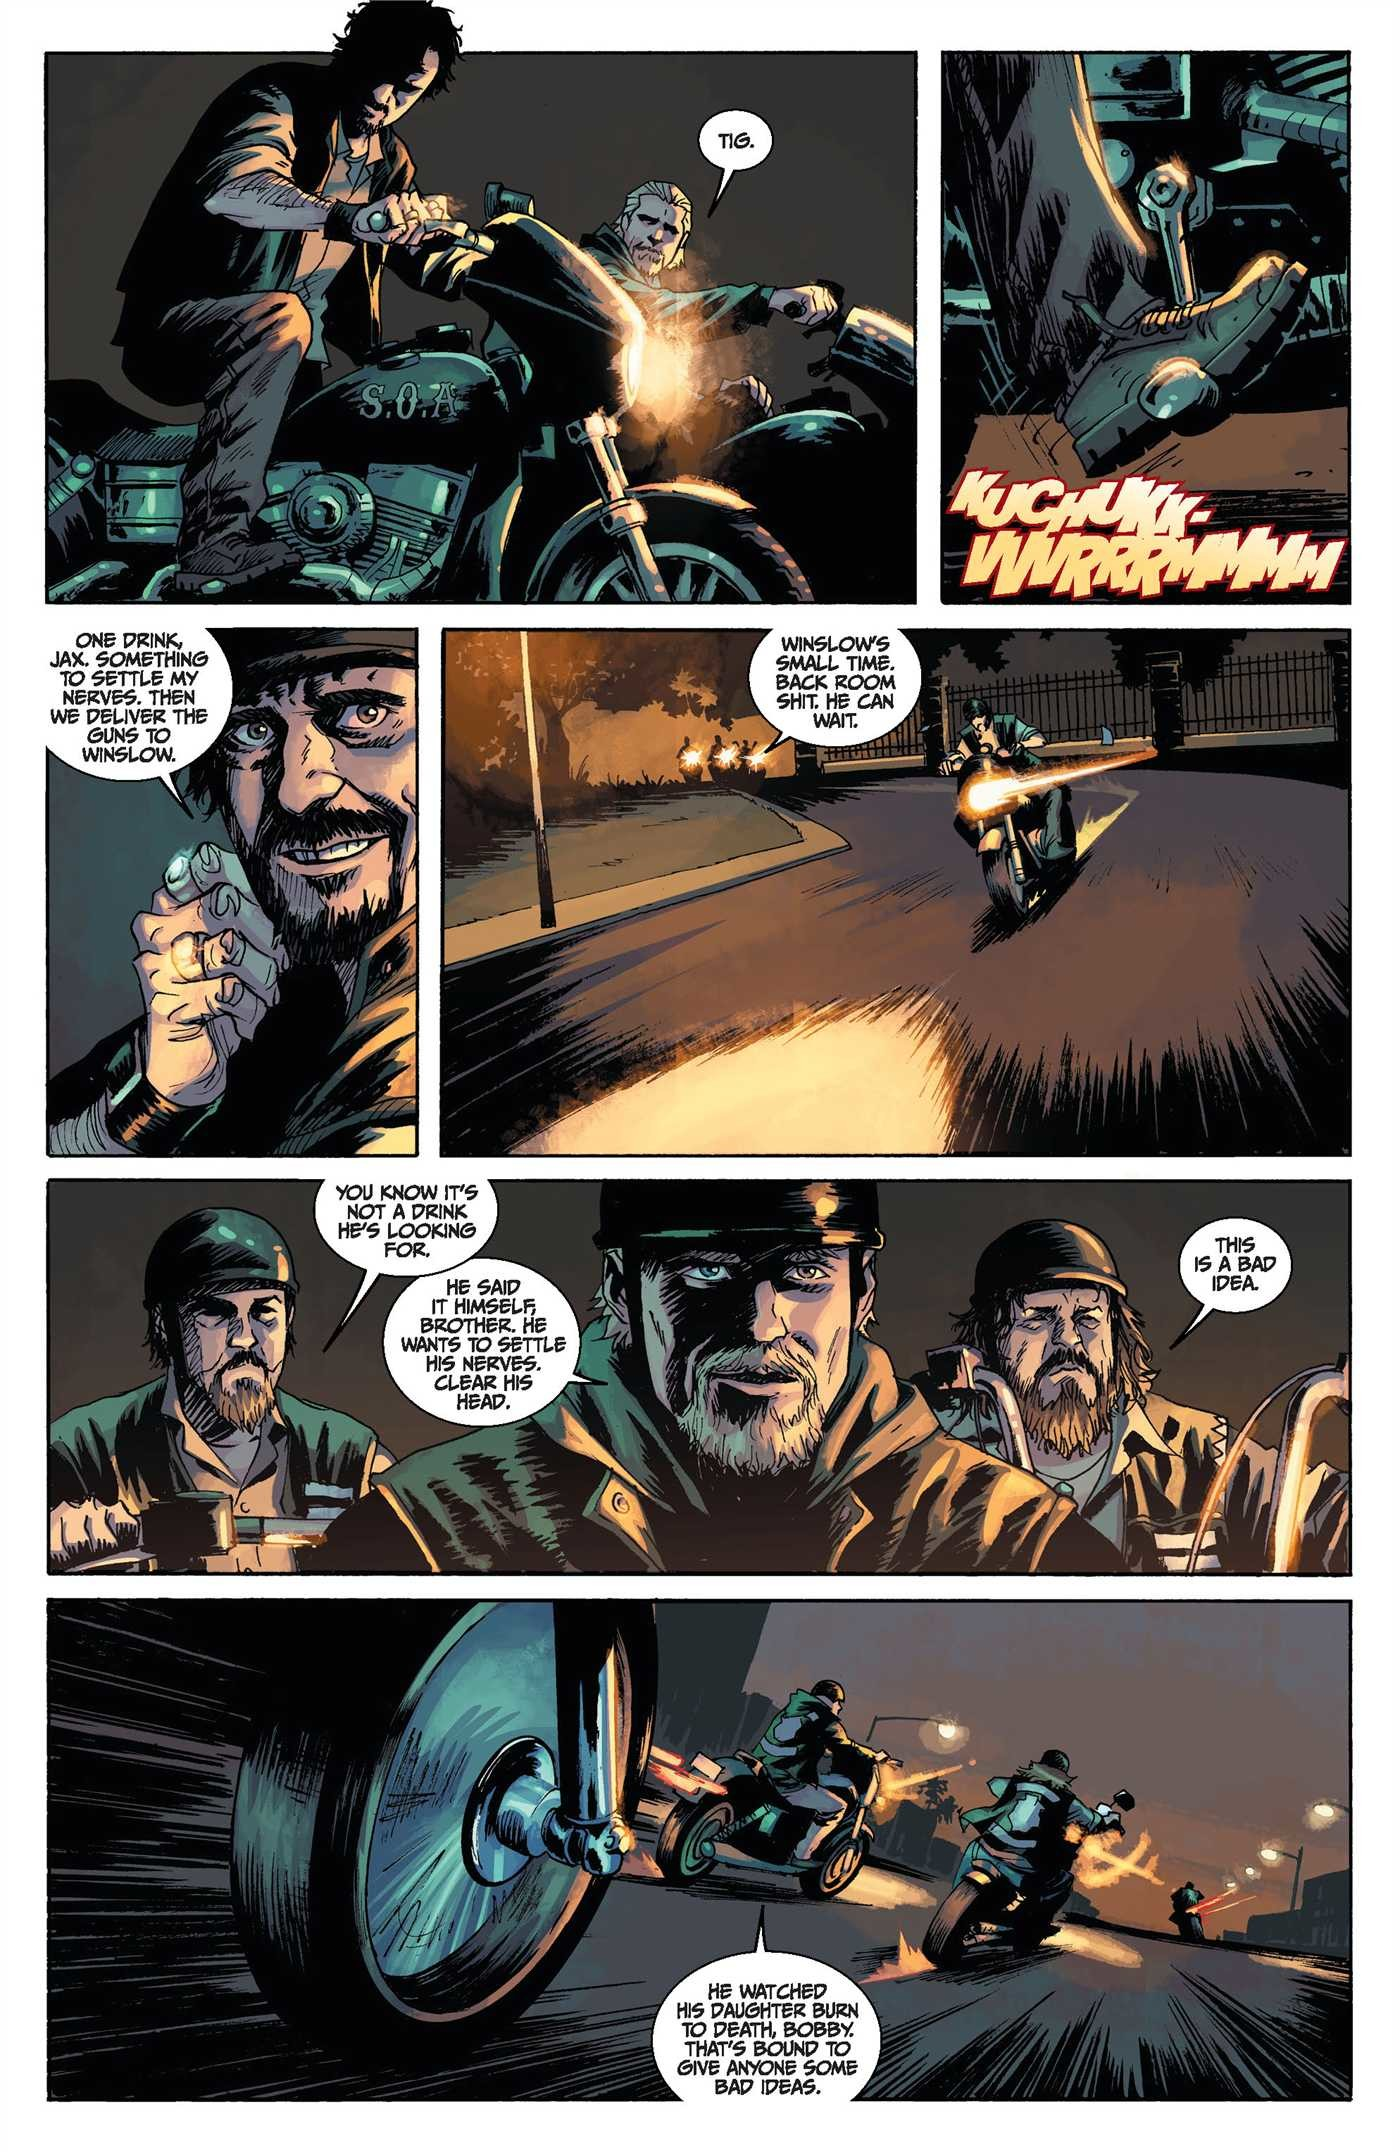 Sons-of-anarchy-vol-1-9781608864027.in06